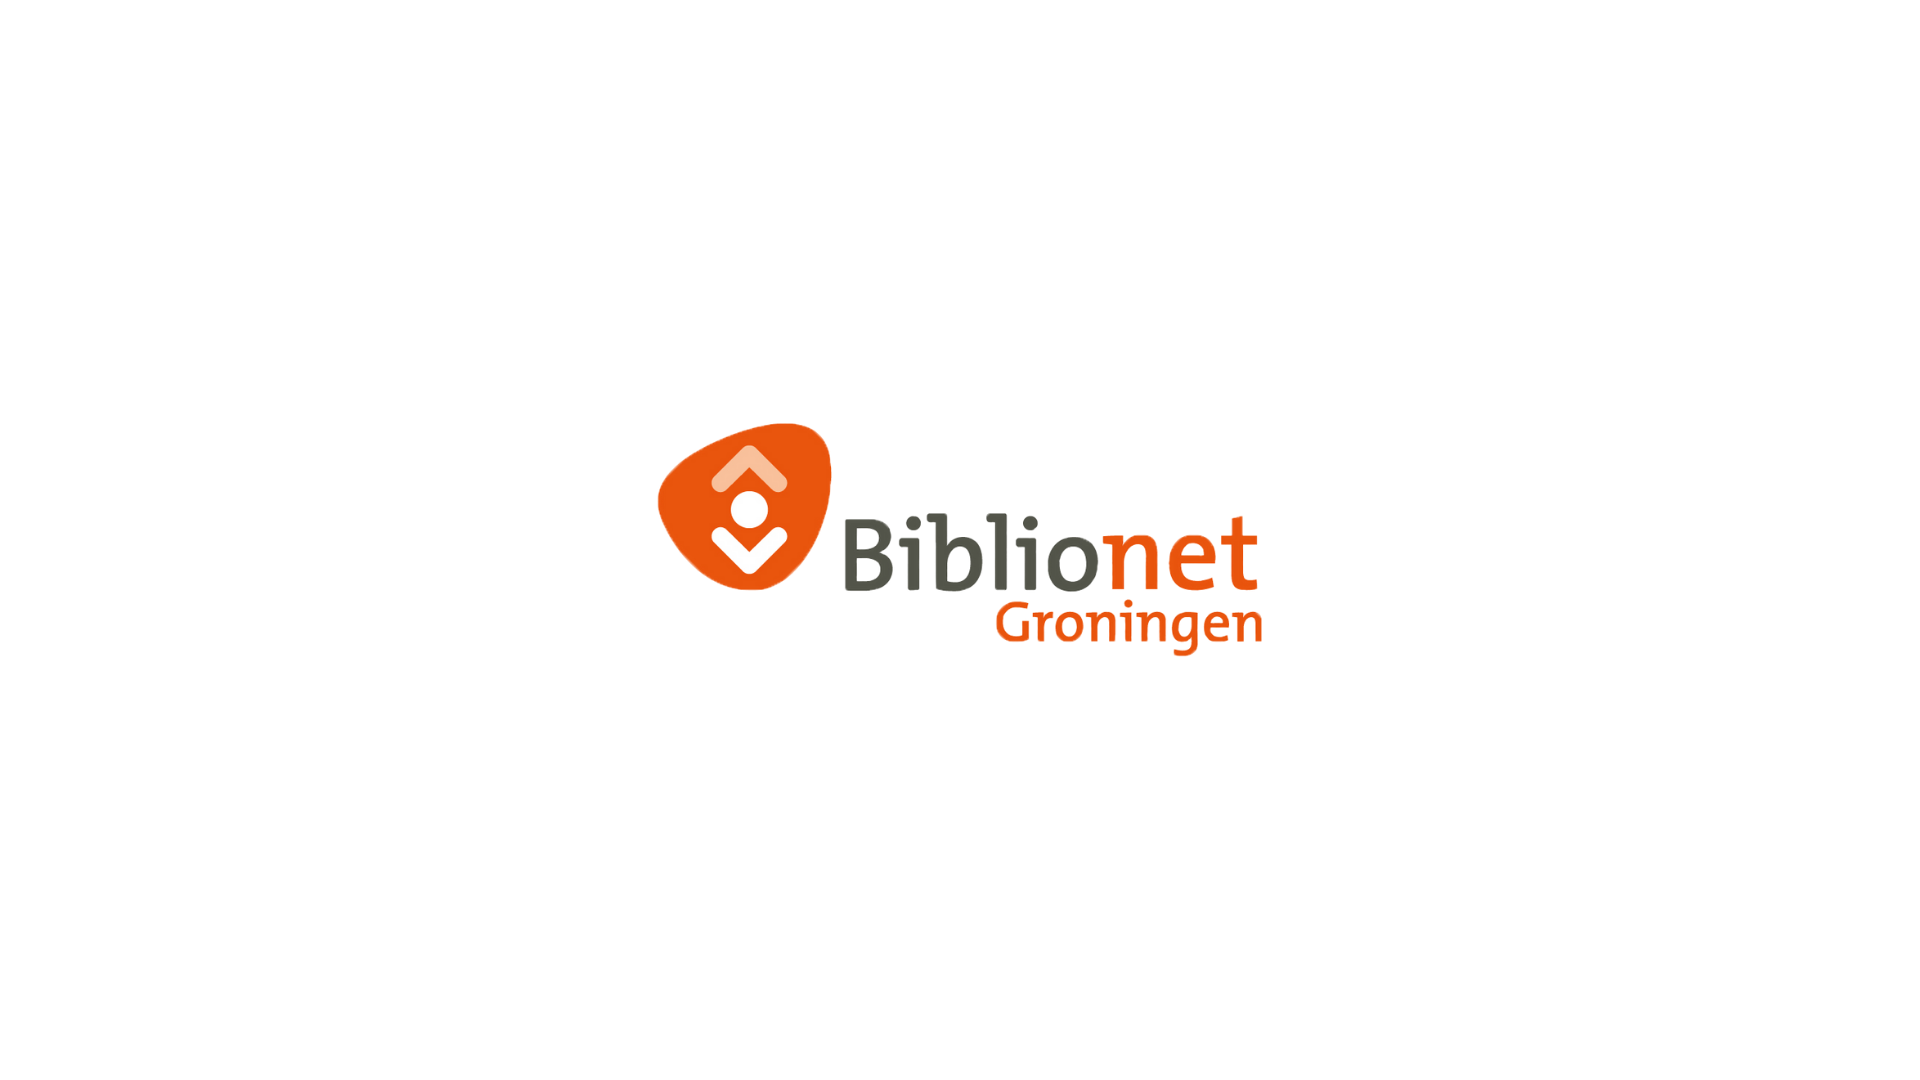 Biblionet Groningen – alternative services | Generation Code 2020